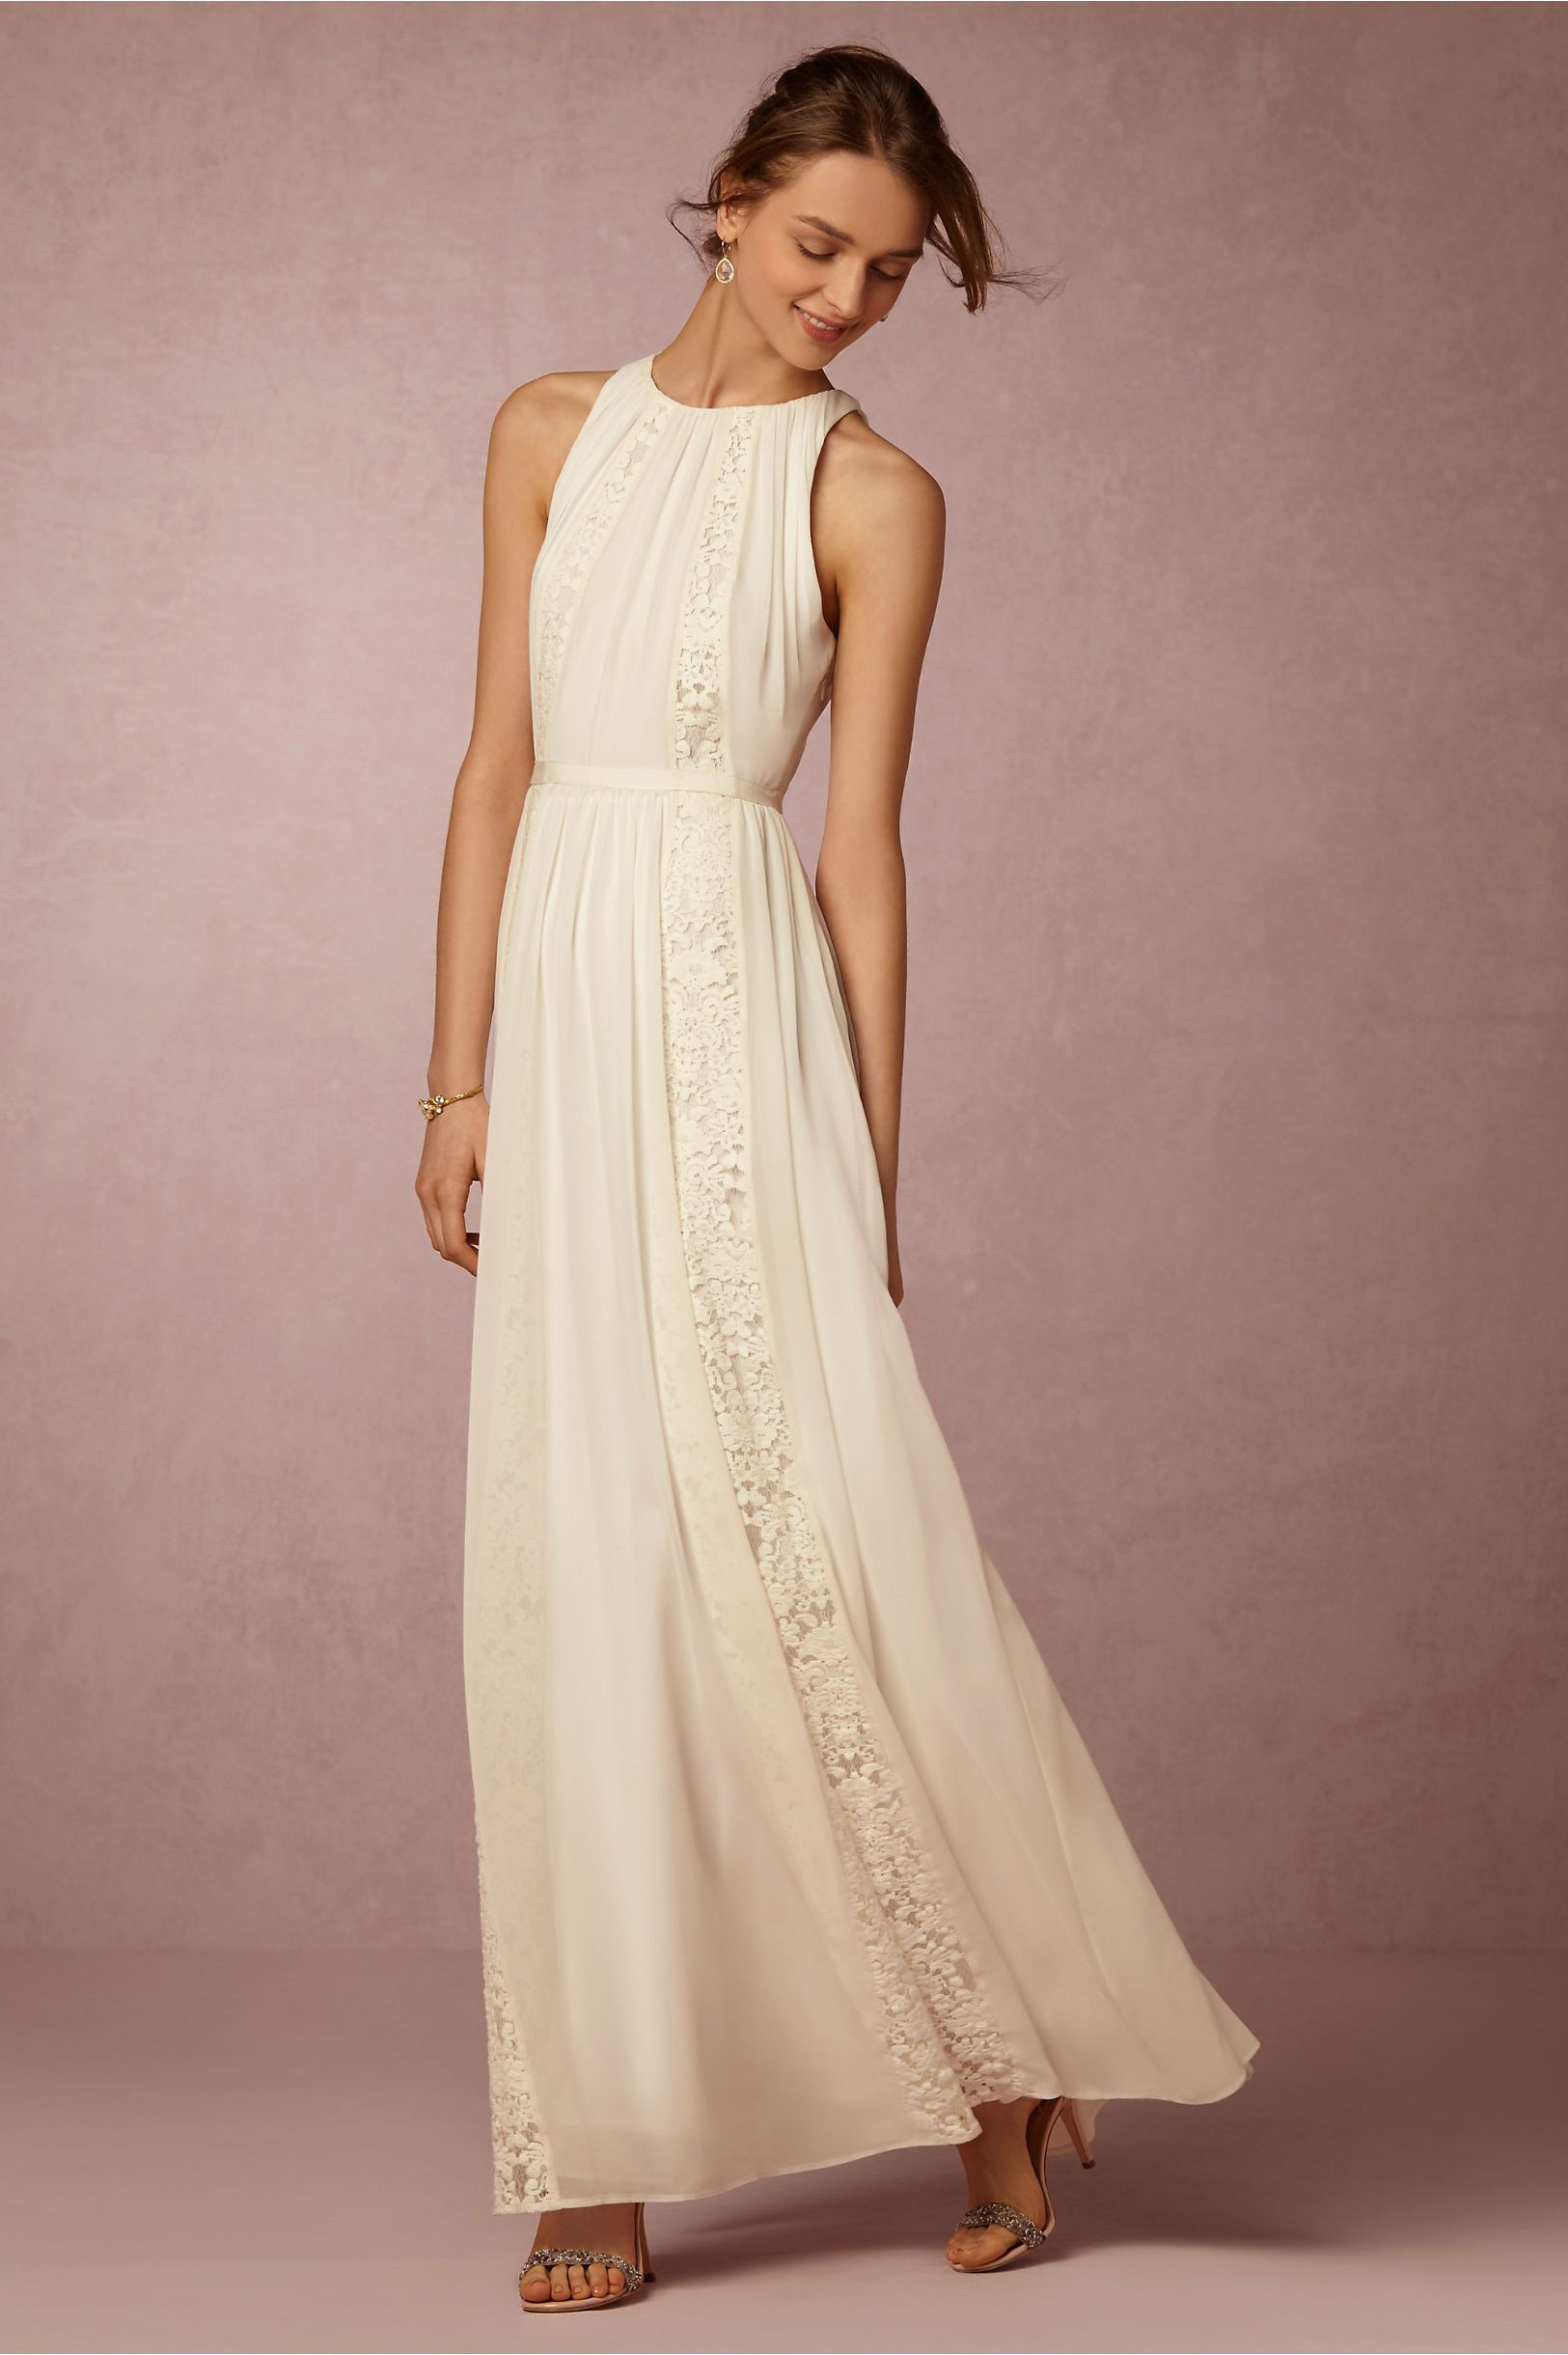 beach wedding dresses cheap BHLDN Chandler Dress in Dresses View All Dresses at BHLDN